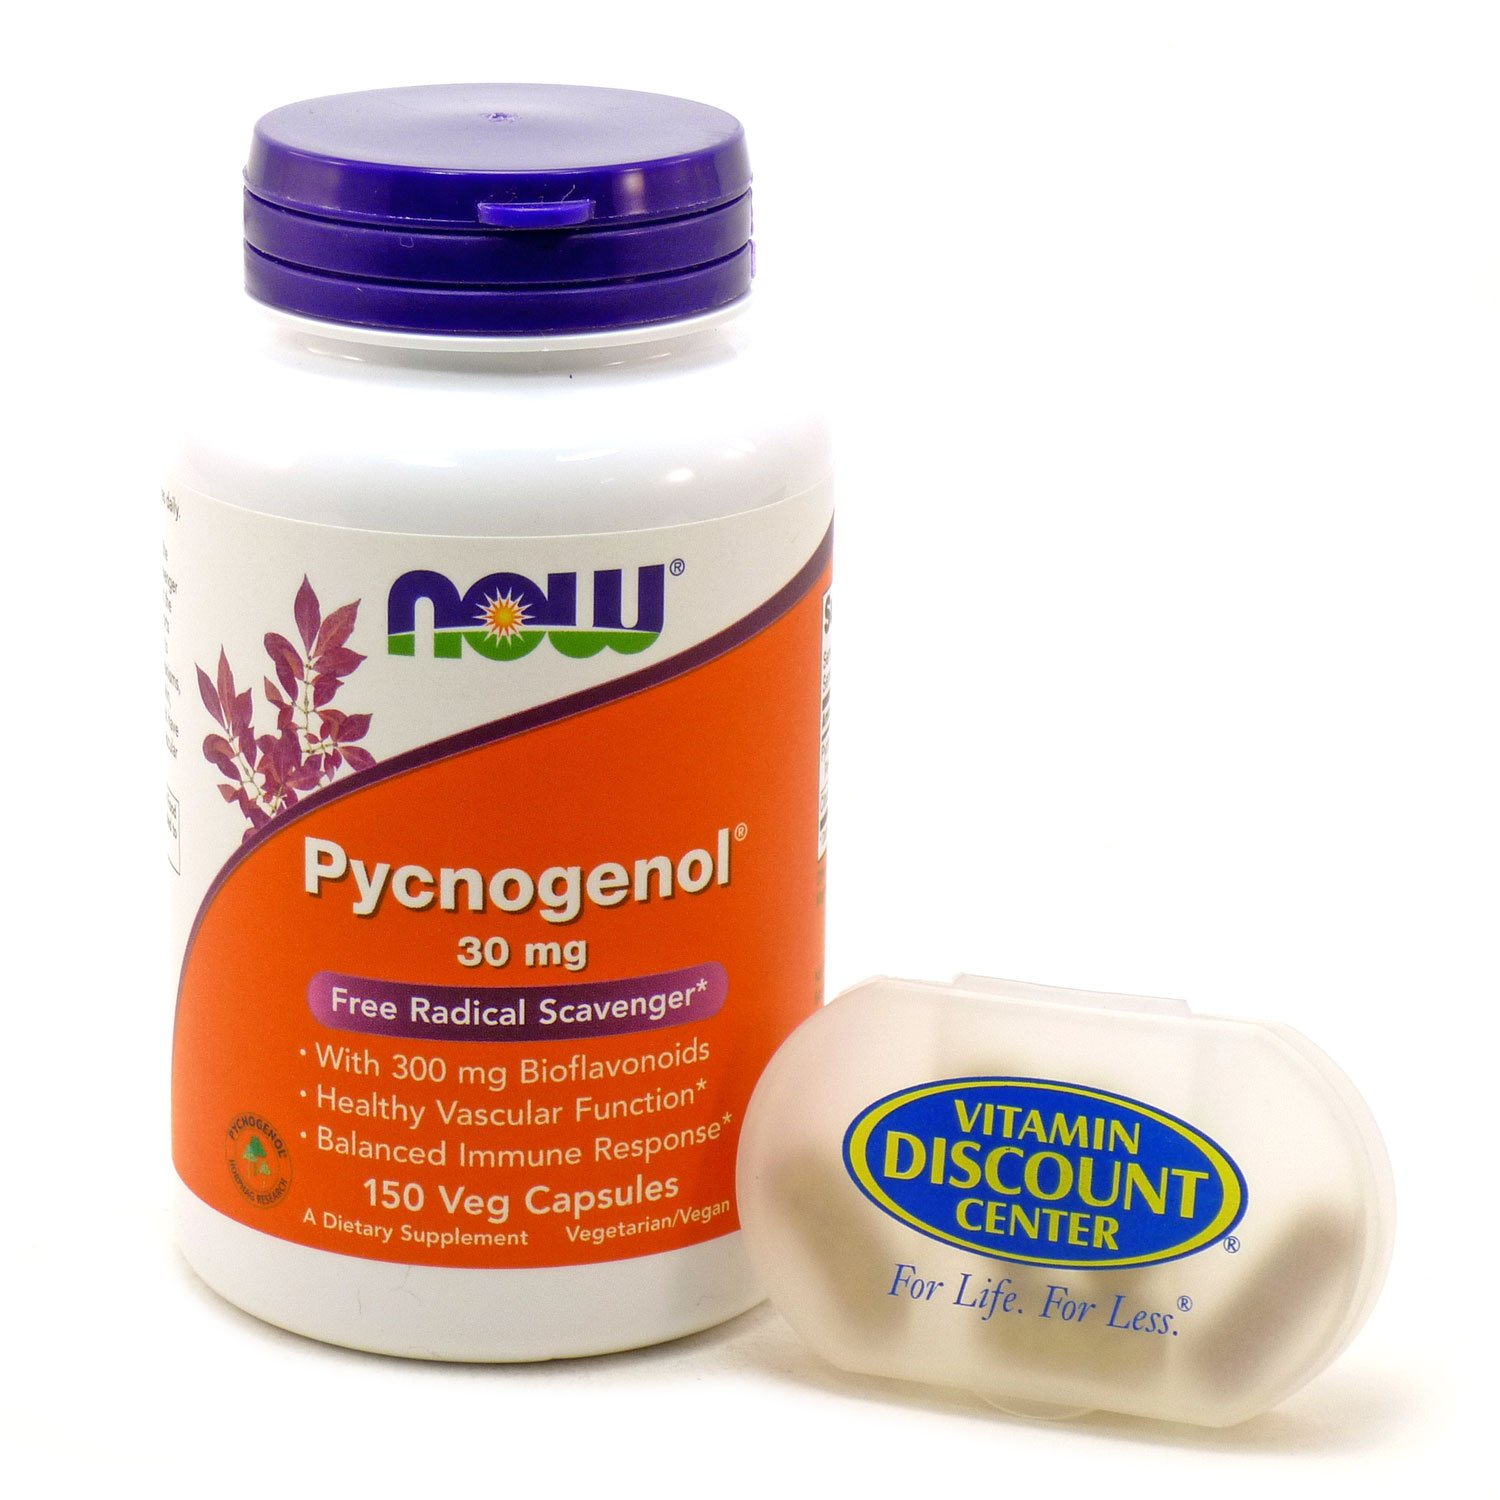 Bundle - 2 Items : 1 Bottle of Pycnogenol 30 mg by Now Foods - 150 Capsules and 1 VDC Pill Box